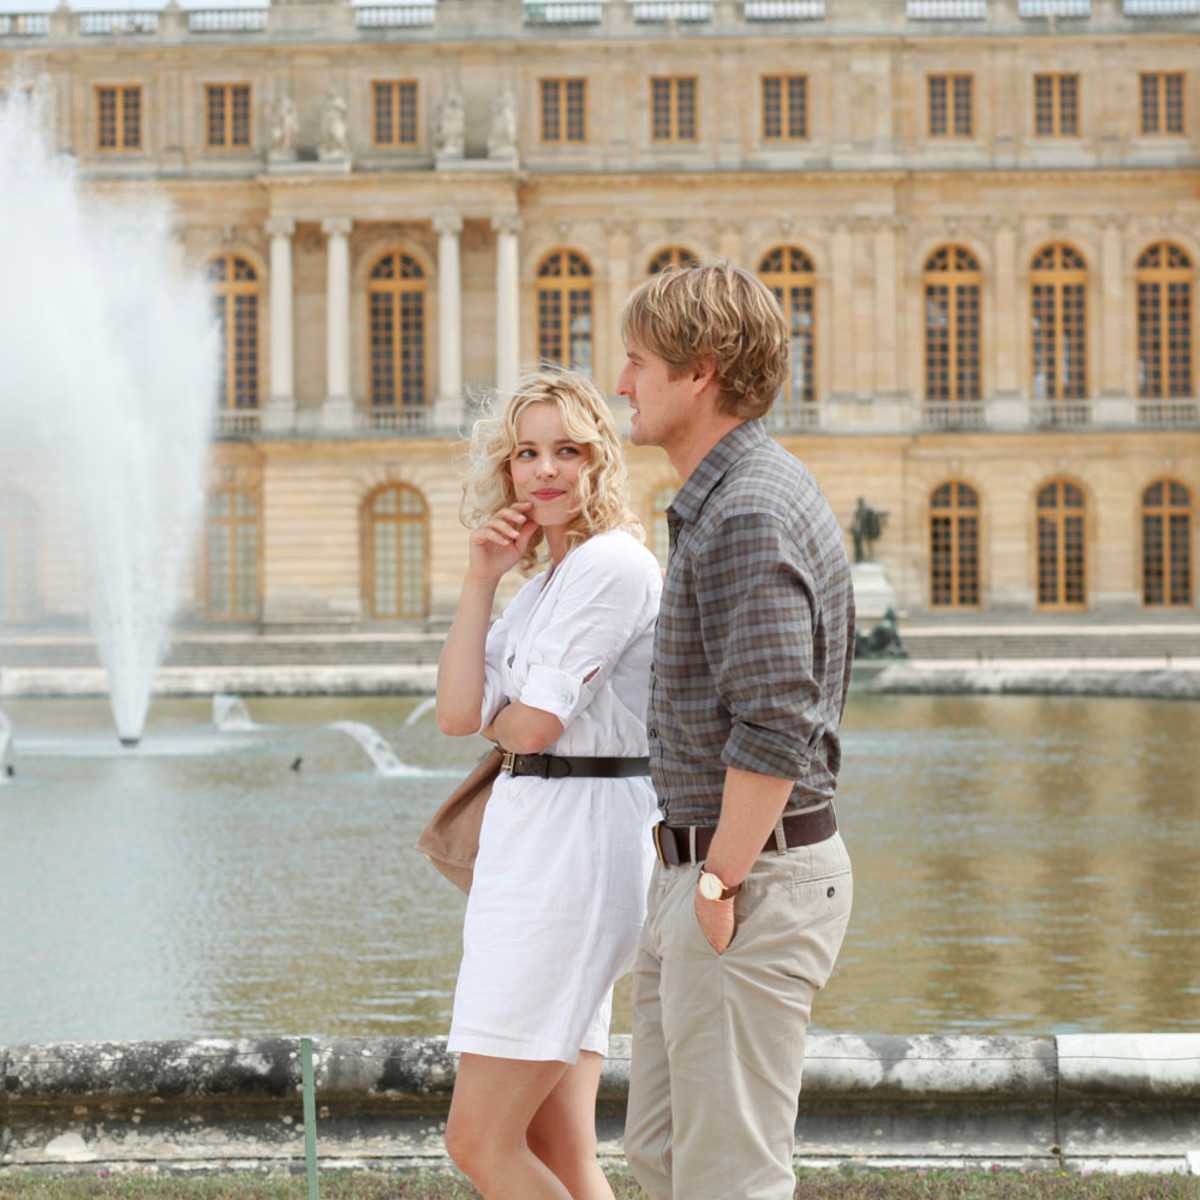 News_Summer preview_Midnight in Paris